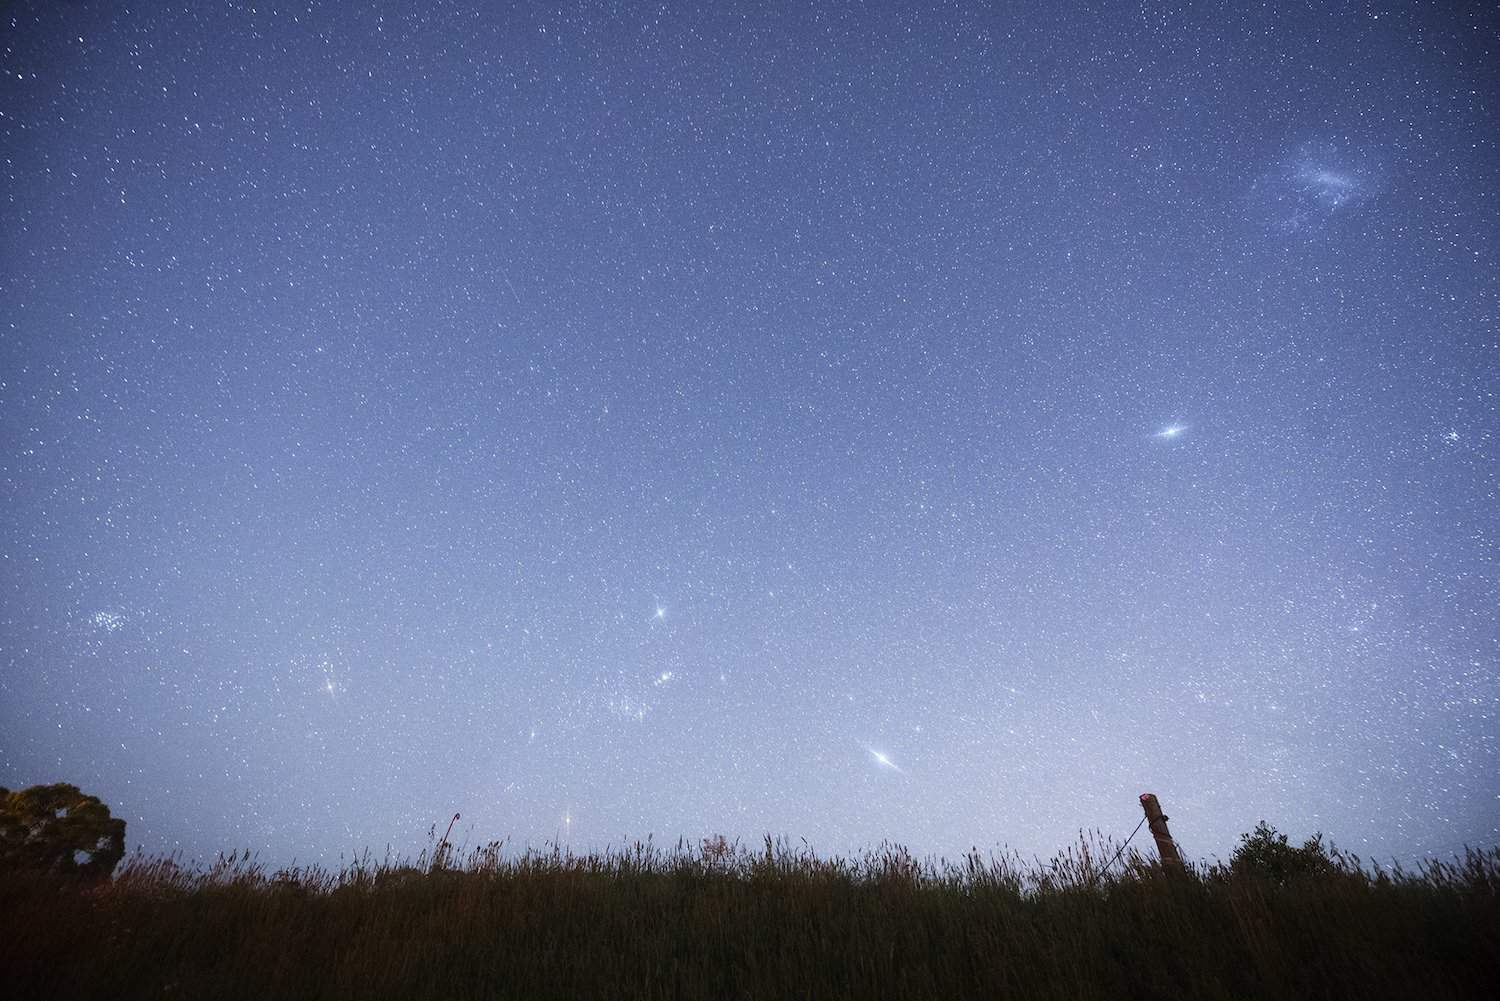 Night Sky in January - M41 - cafuego via Flickr